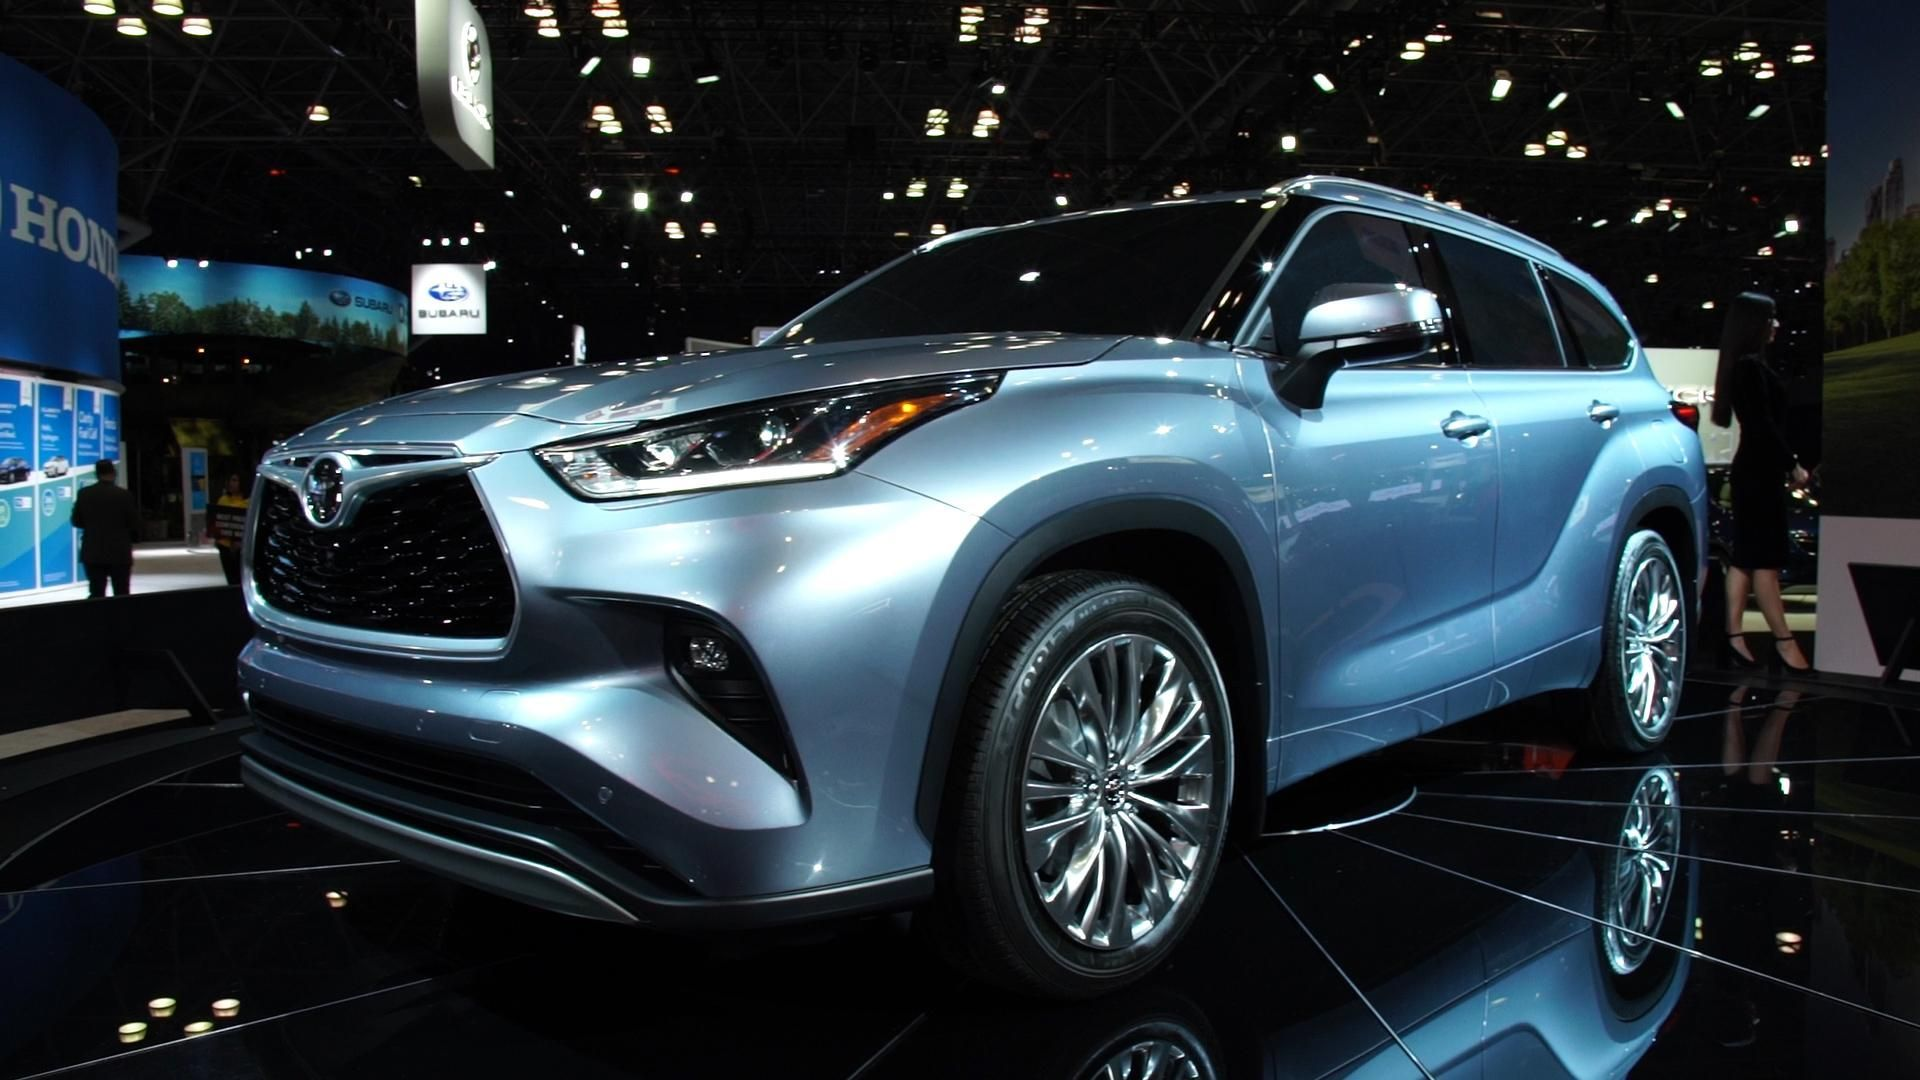 The 2020 Toyota Highlander SUV Latest information about